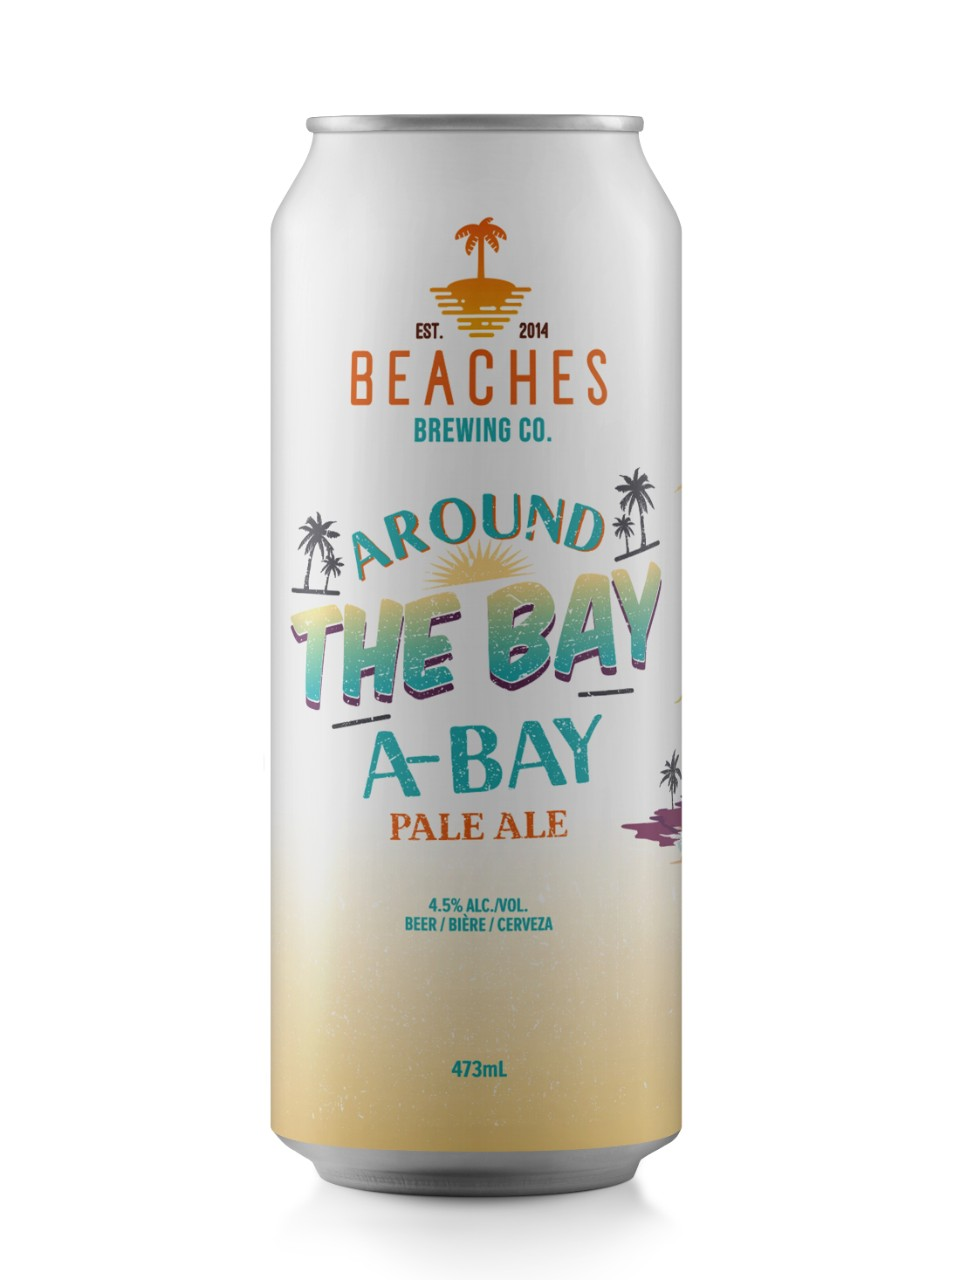 Beaches Brewing Co. A-Bay Pale Ale